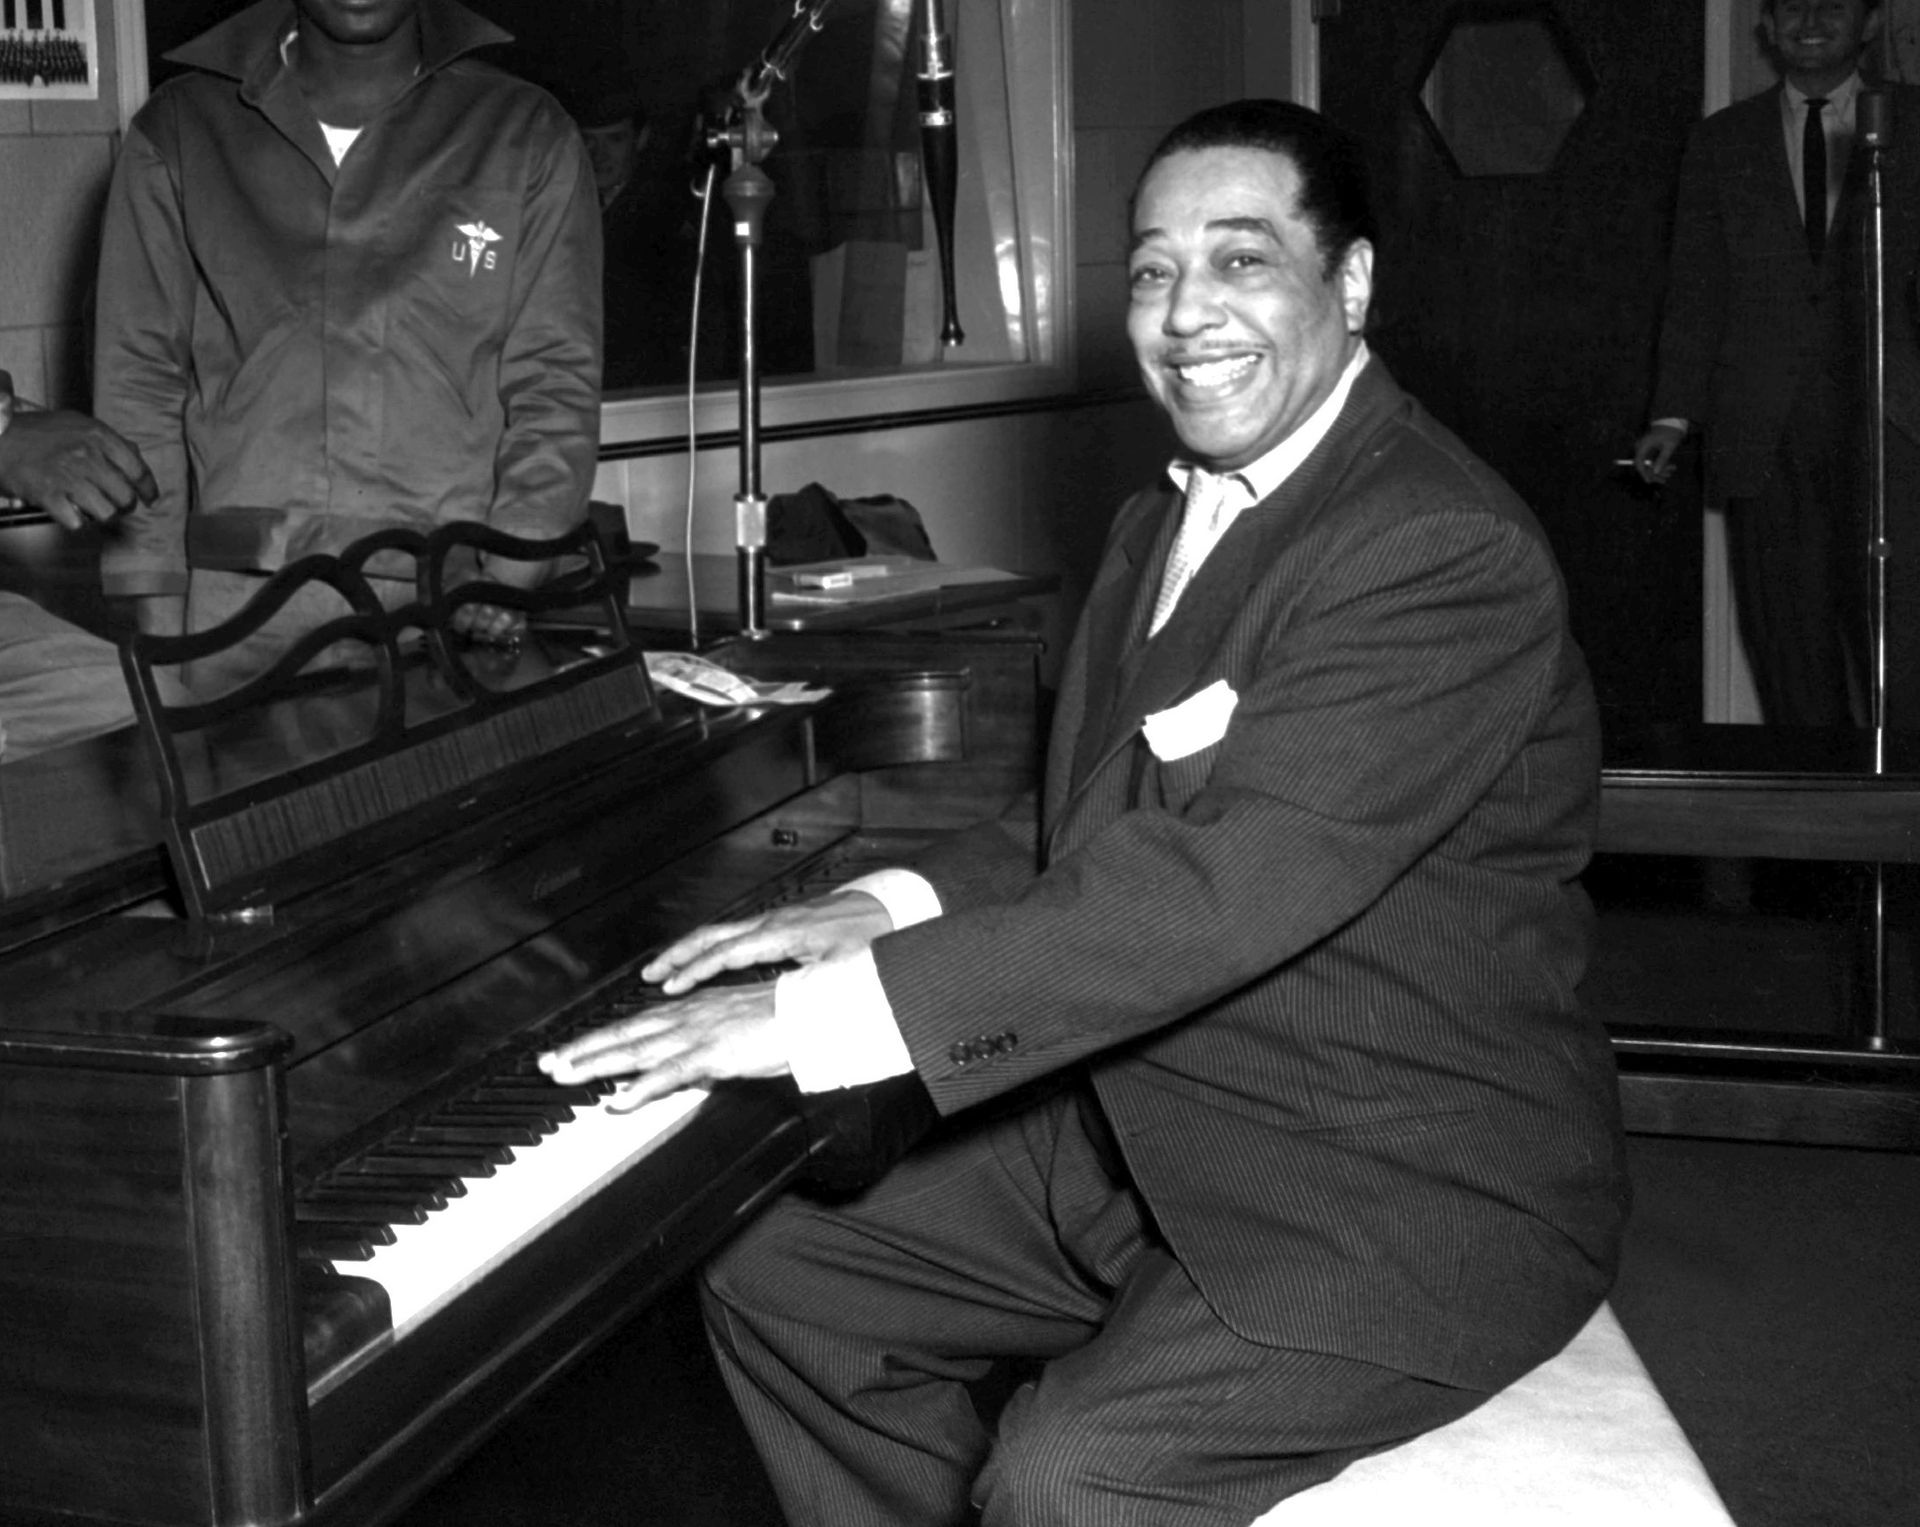 Jazz musician Duke Ellington, for whom the Bridge was named in 1974. Wikimedia Commons.